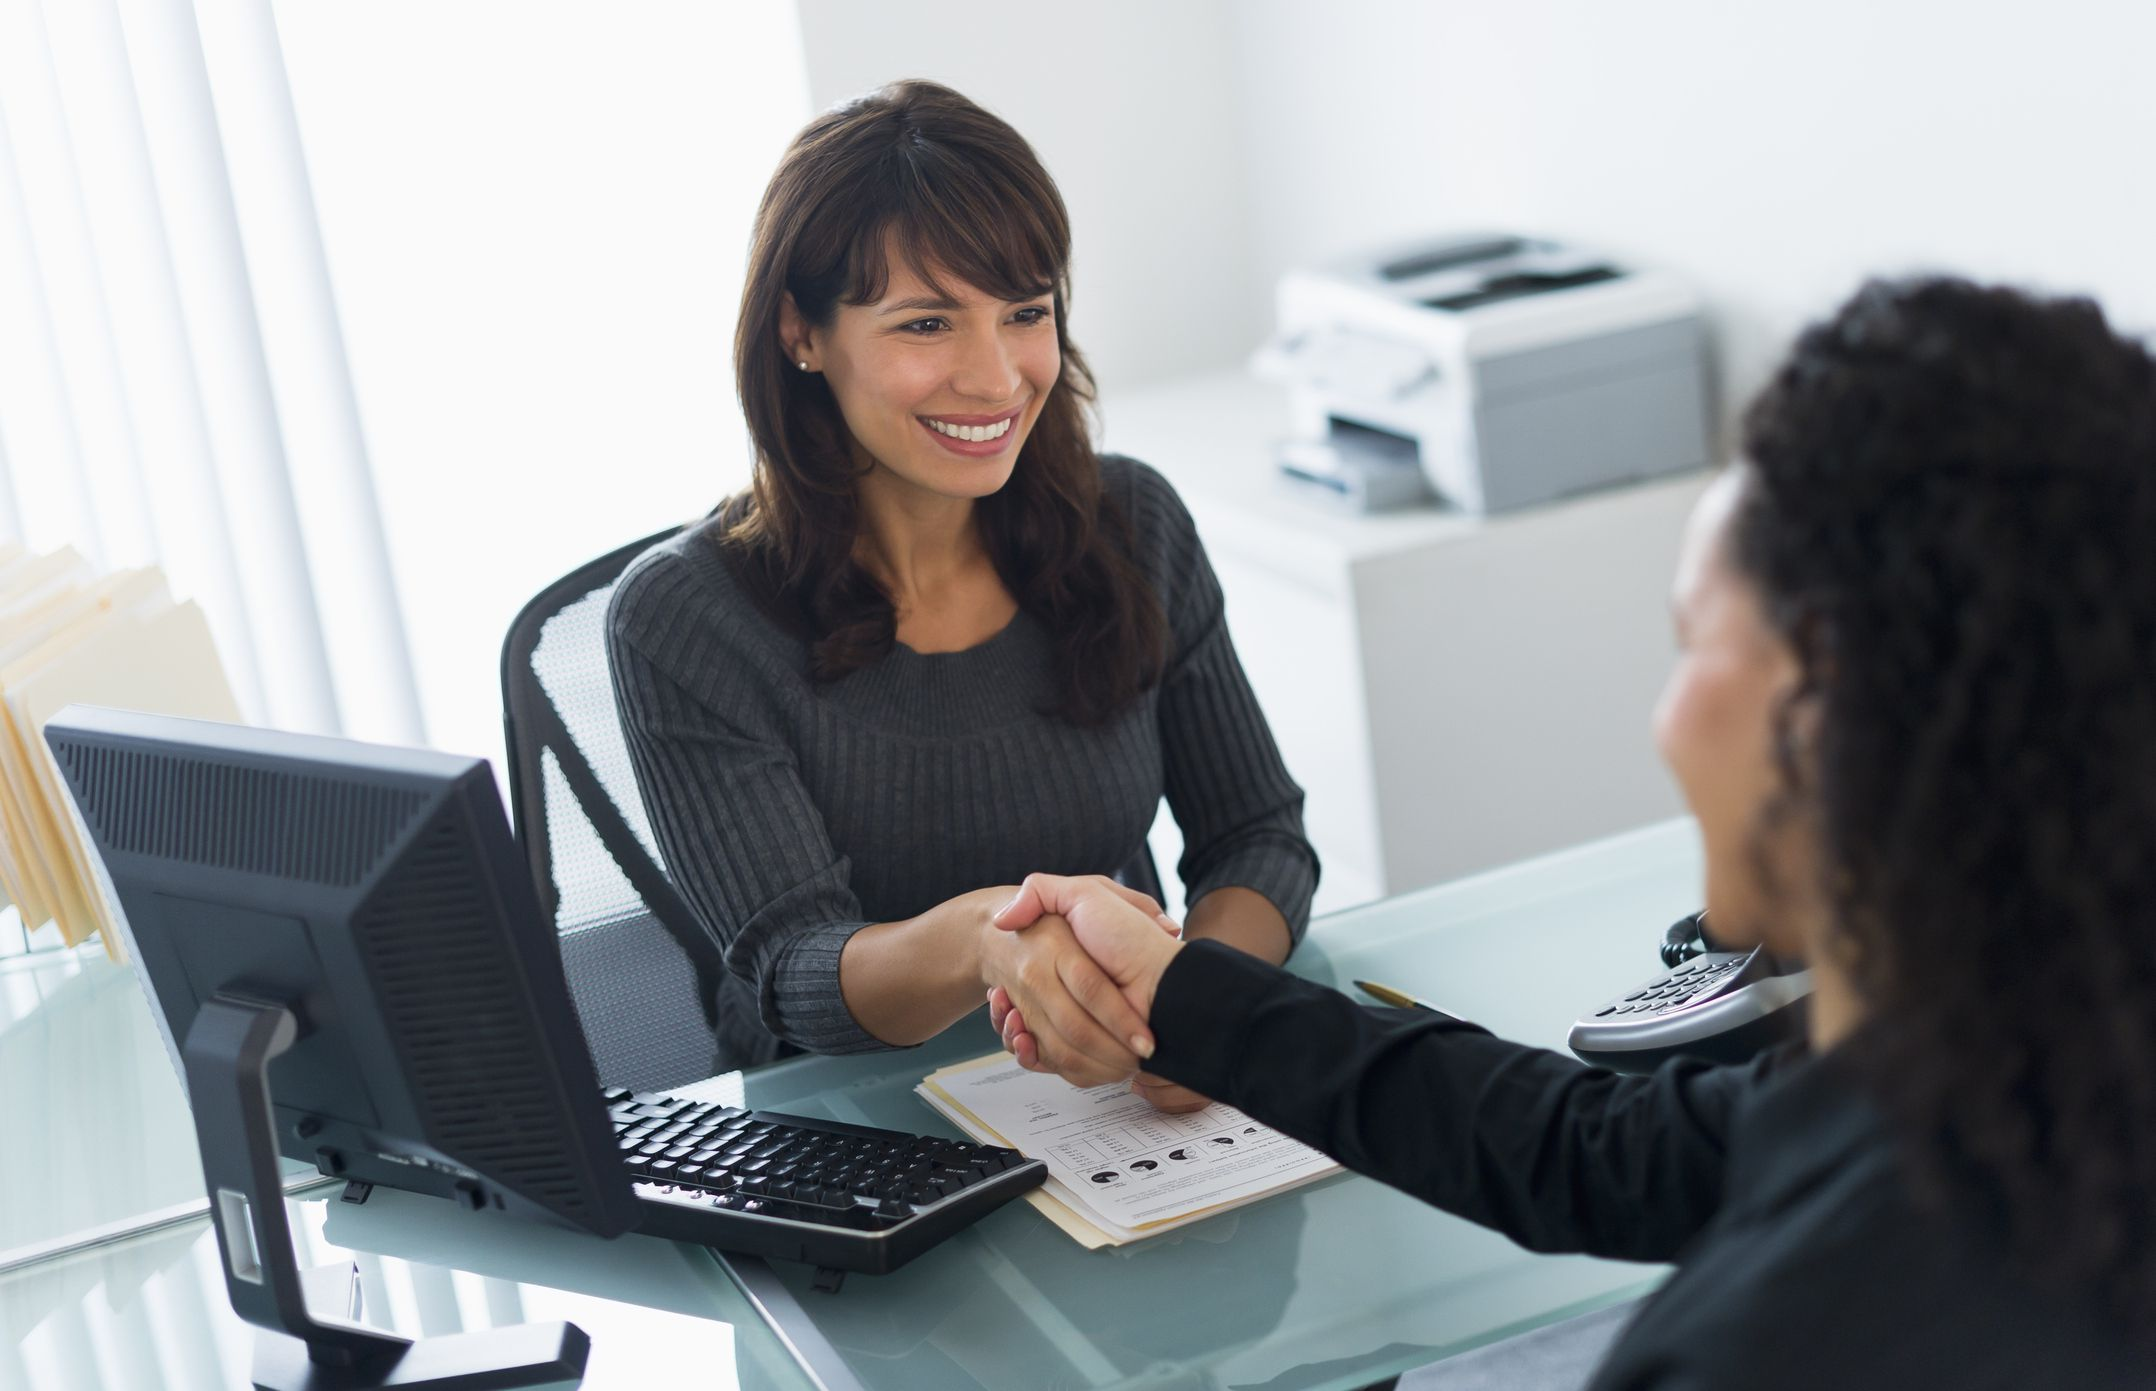 How to Get the Hiring Manager on Your Side